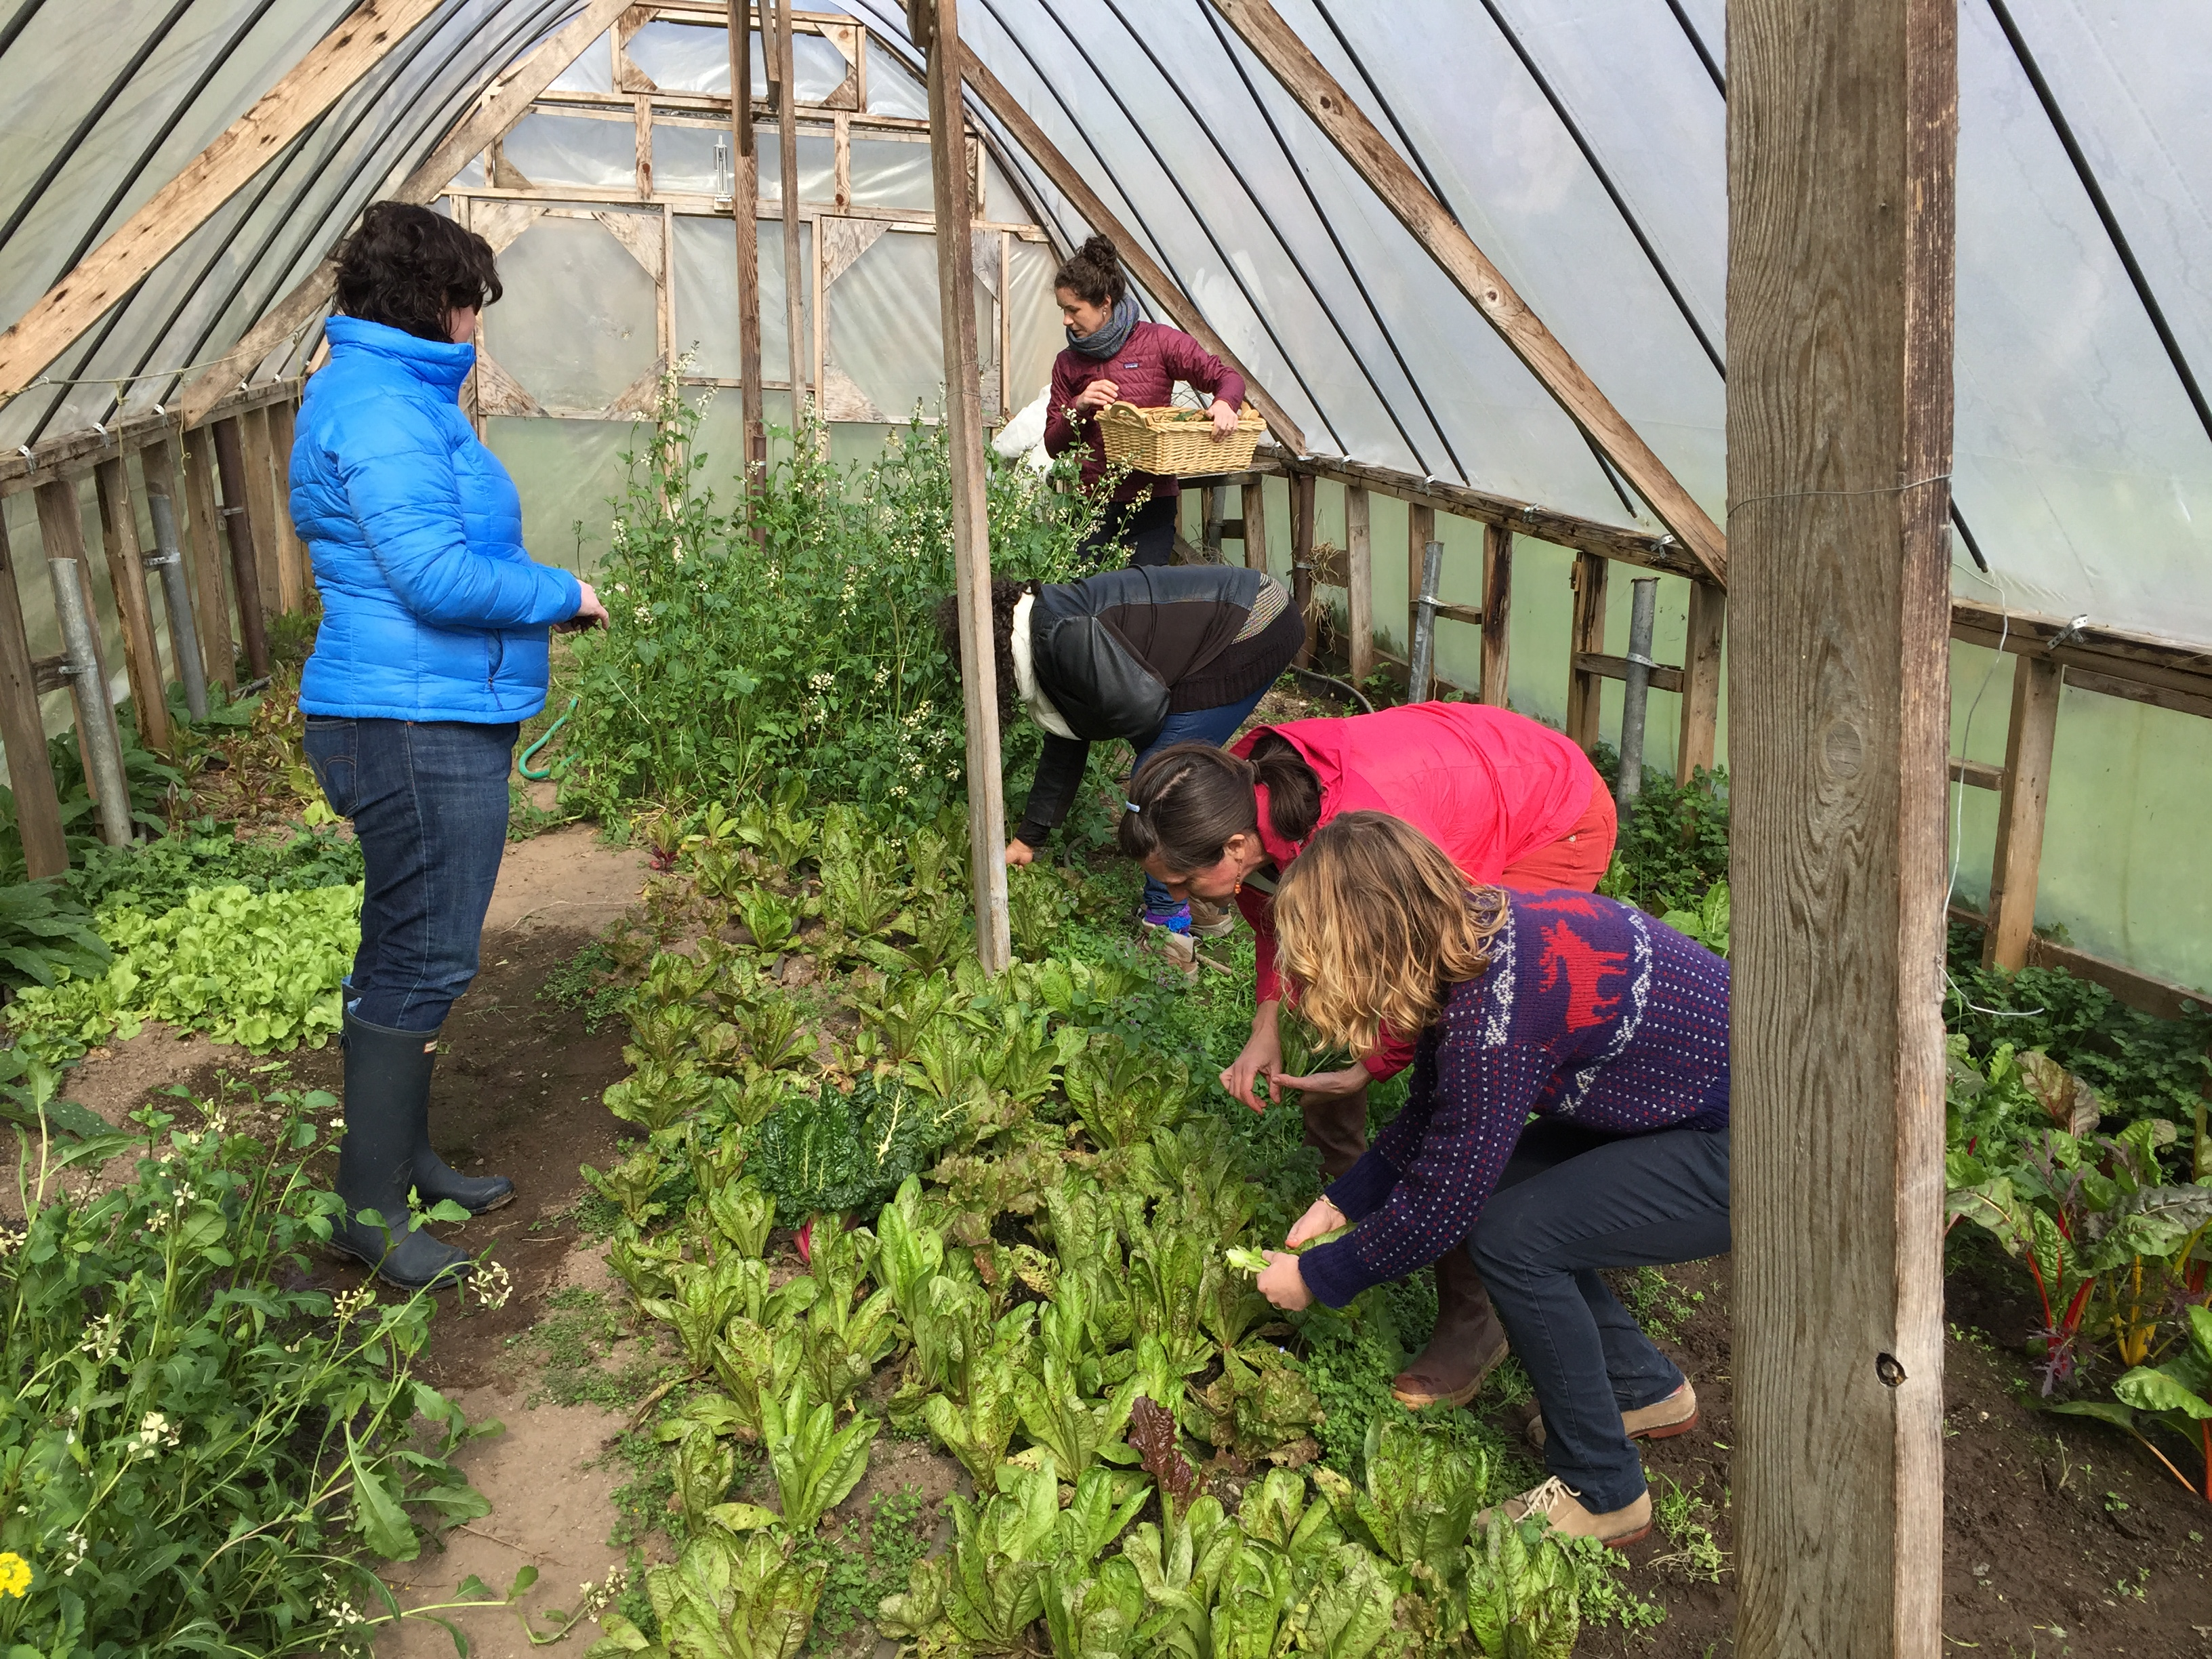 Education Towards Food, Citizenship and Community - EduCultureEduCulture